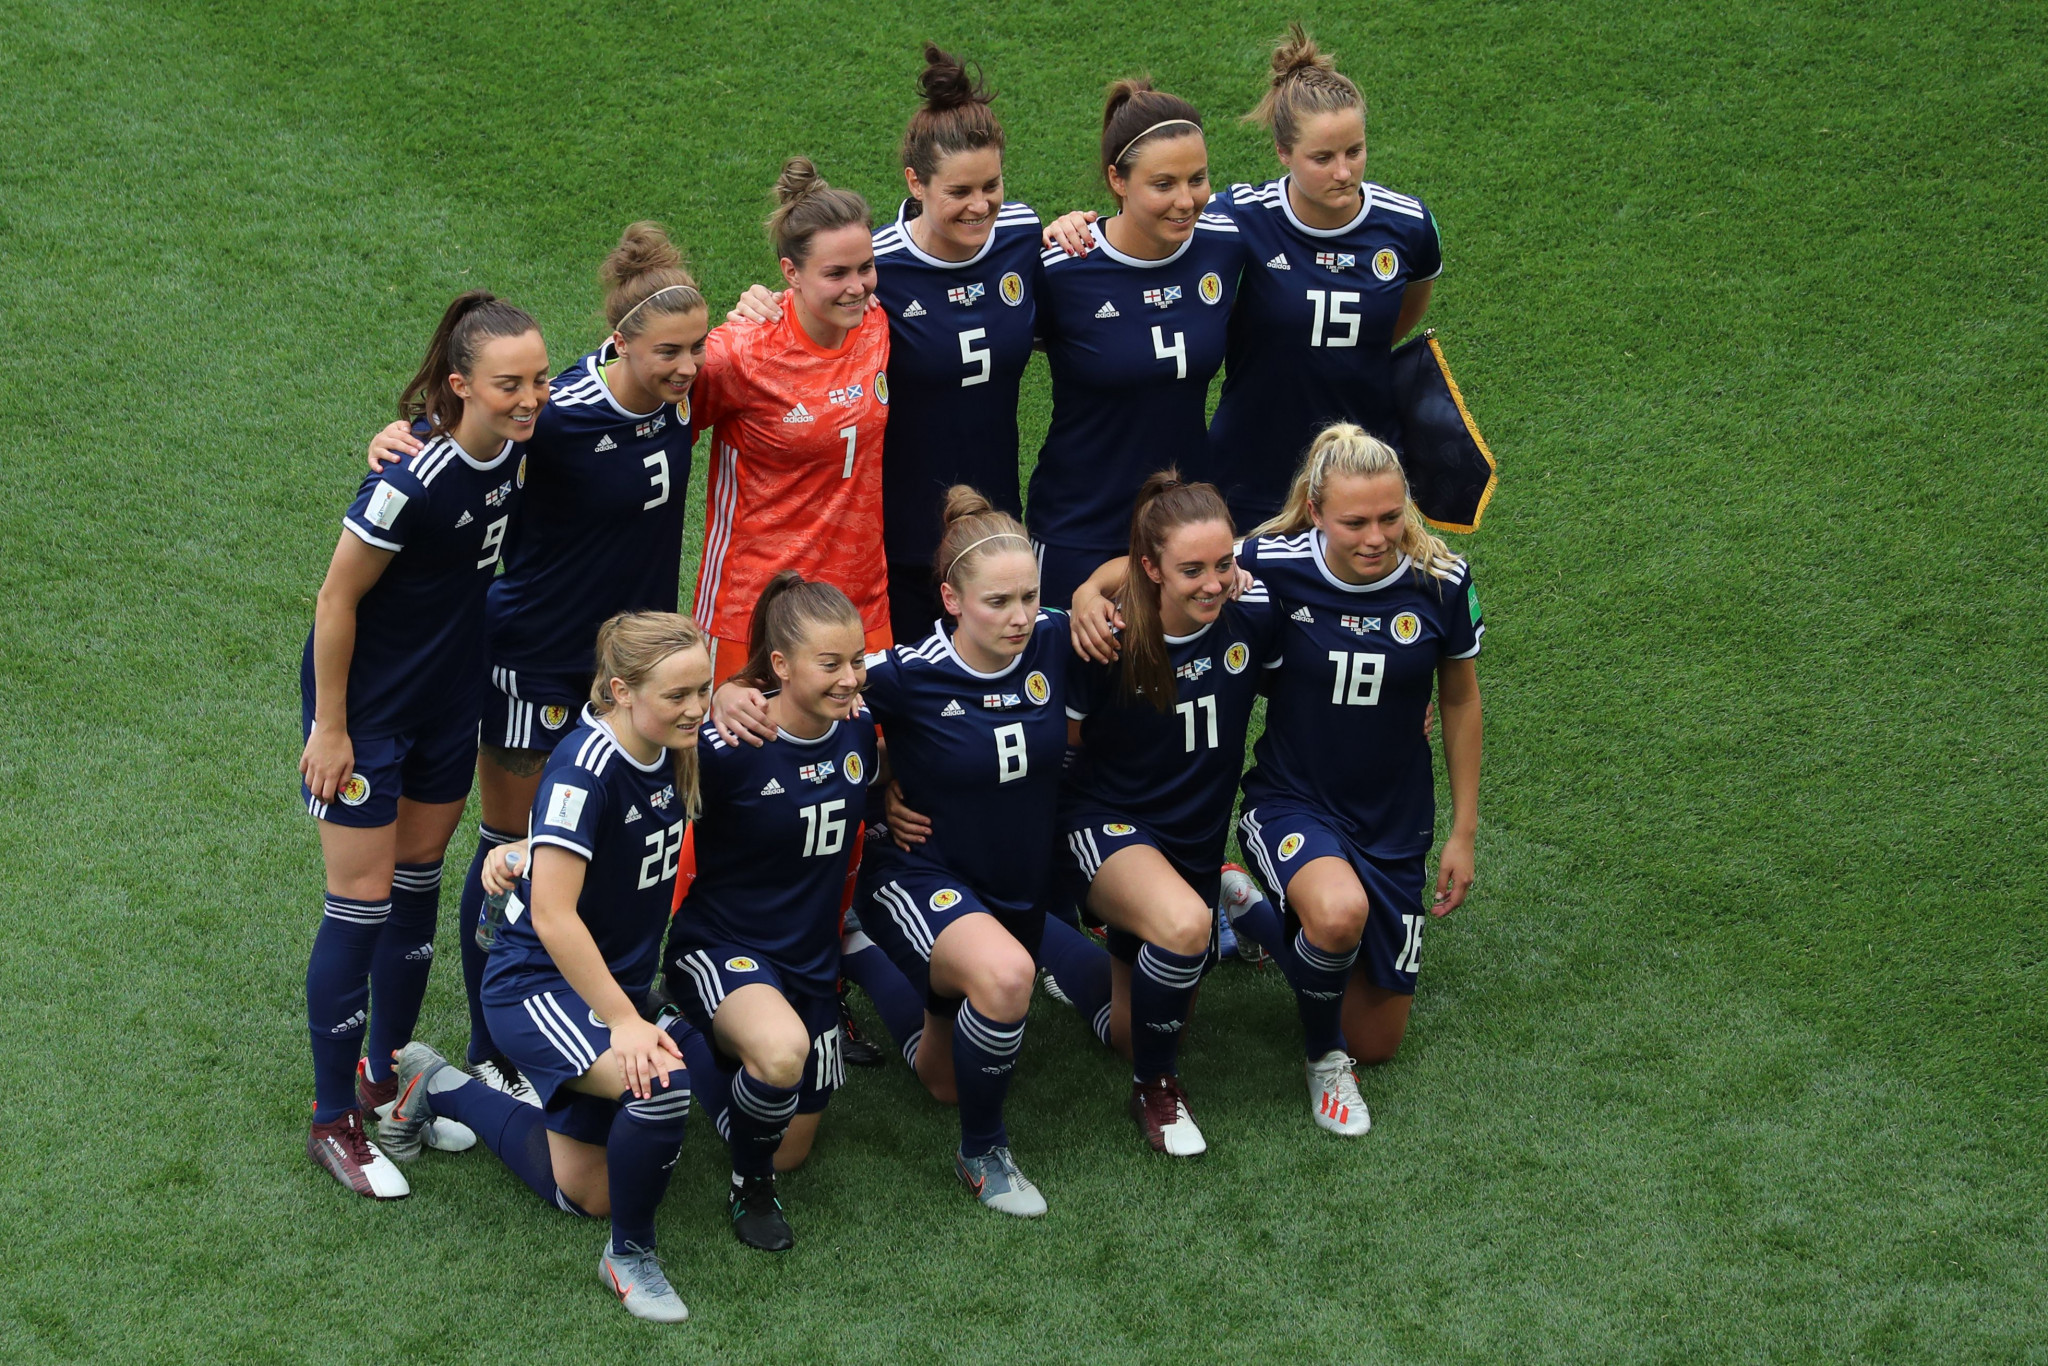 Three more matches will take place tomorrow, including Scotland against Japan ©Getty Images